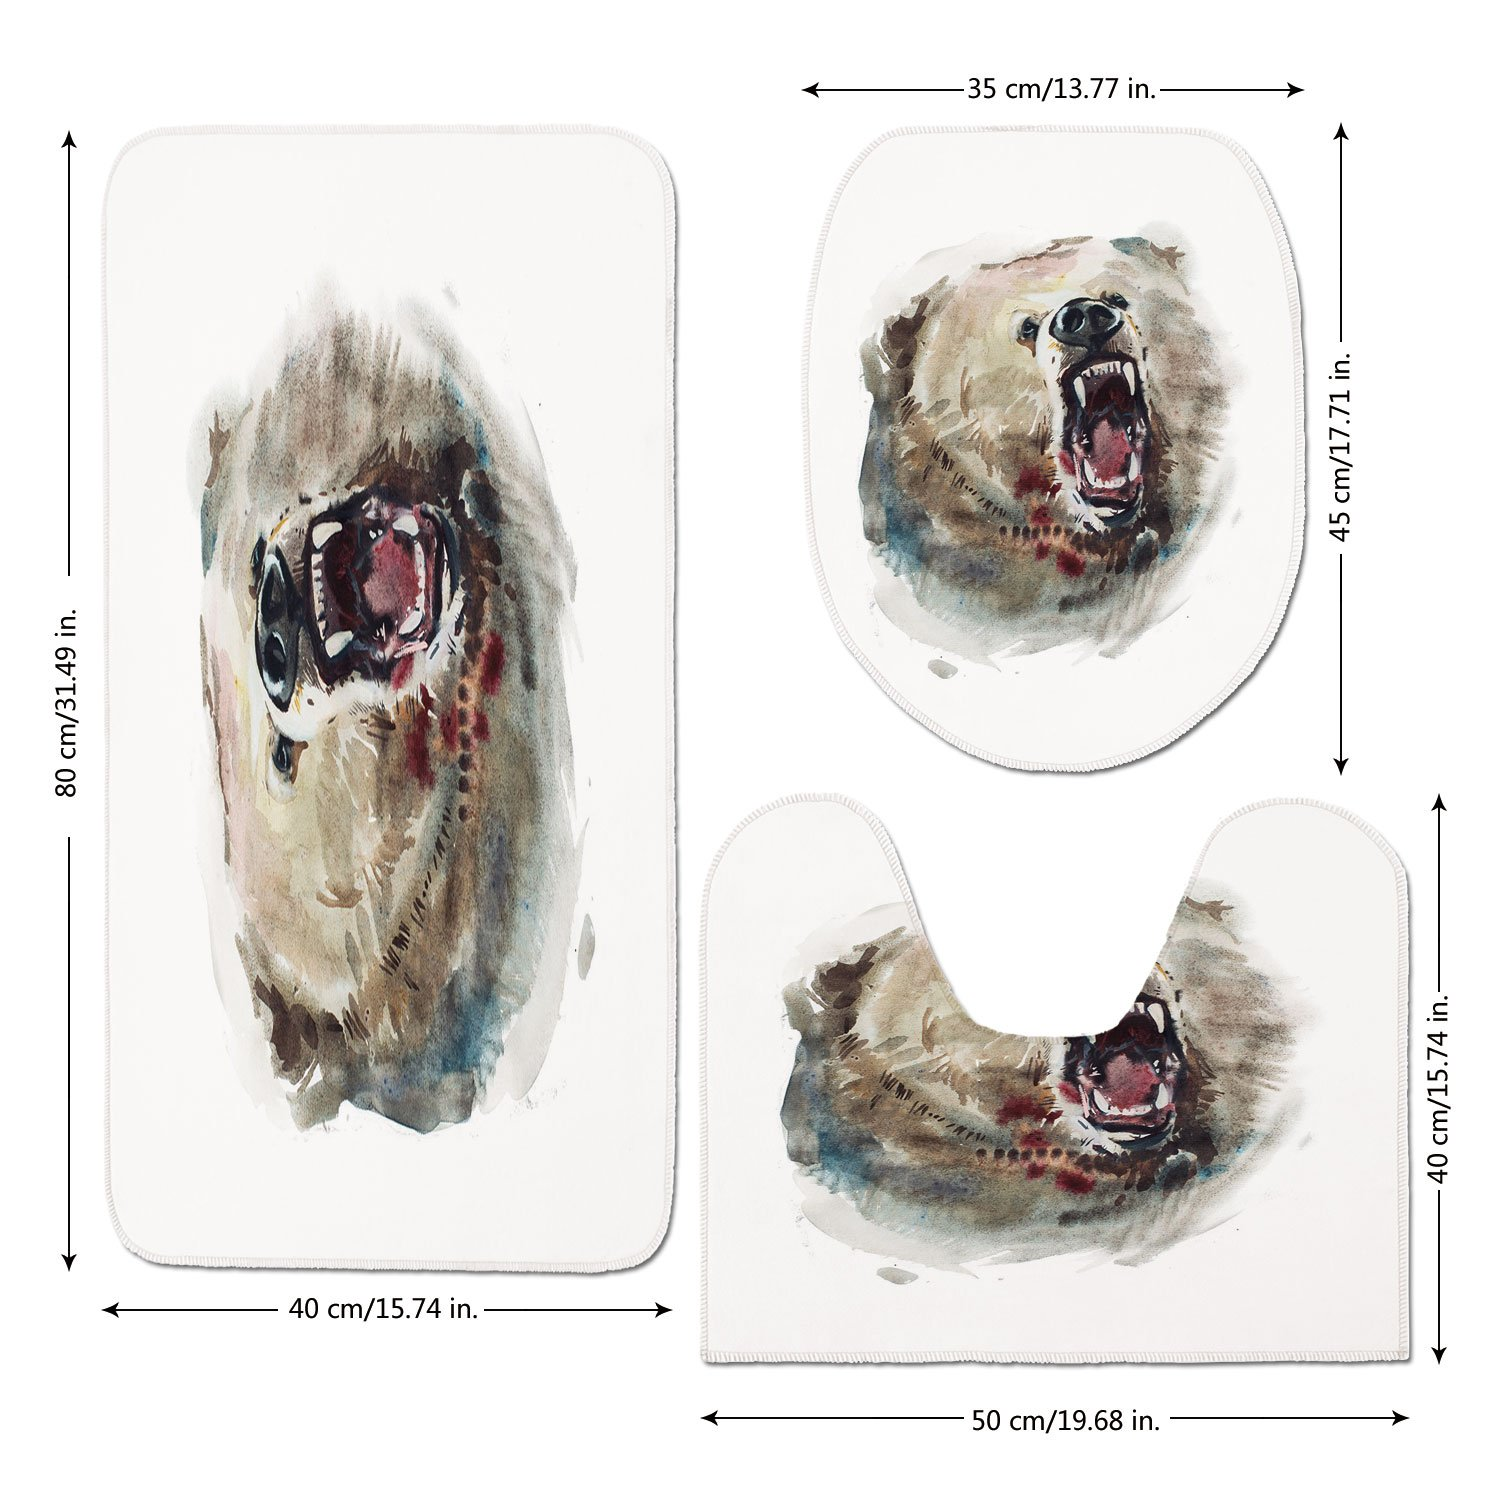 3 Piece Bathroom Mat Set,Bear,Watercolor-Drawing-Style-Angry-Looking-Wild-Animal-Aggressive-Vicious-Growl-Fangs-Decorative,Tan-Red-Black.jpg,Bath Mat,Bathroom Carpet Rug,Non-Slip